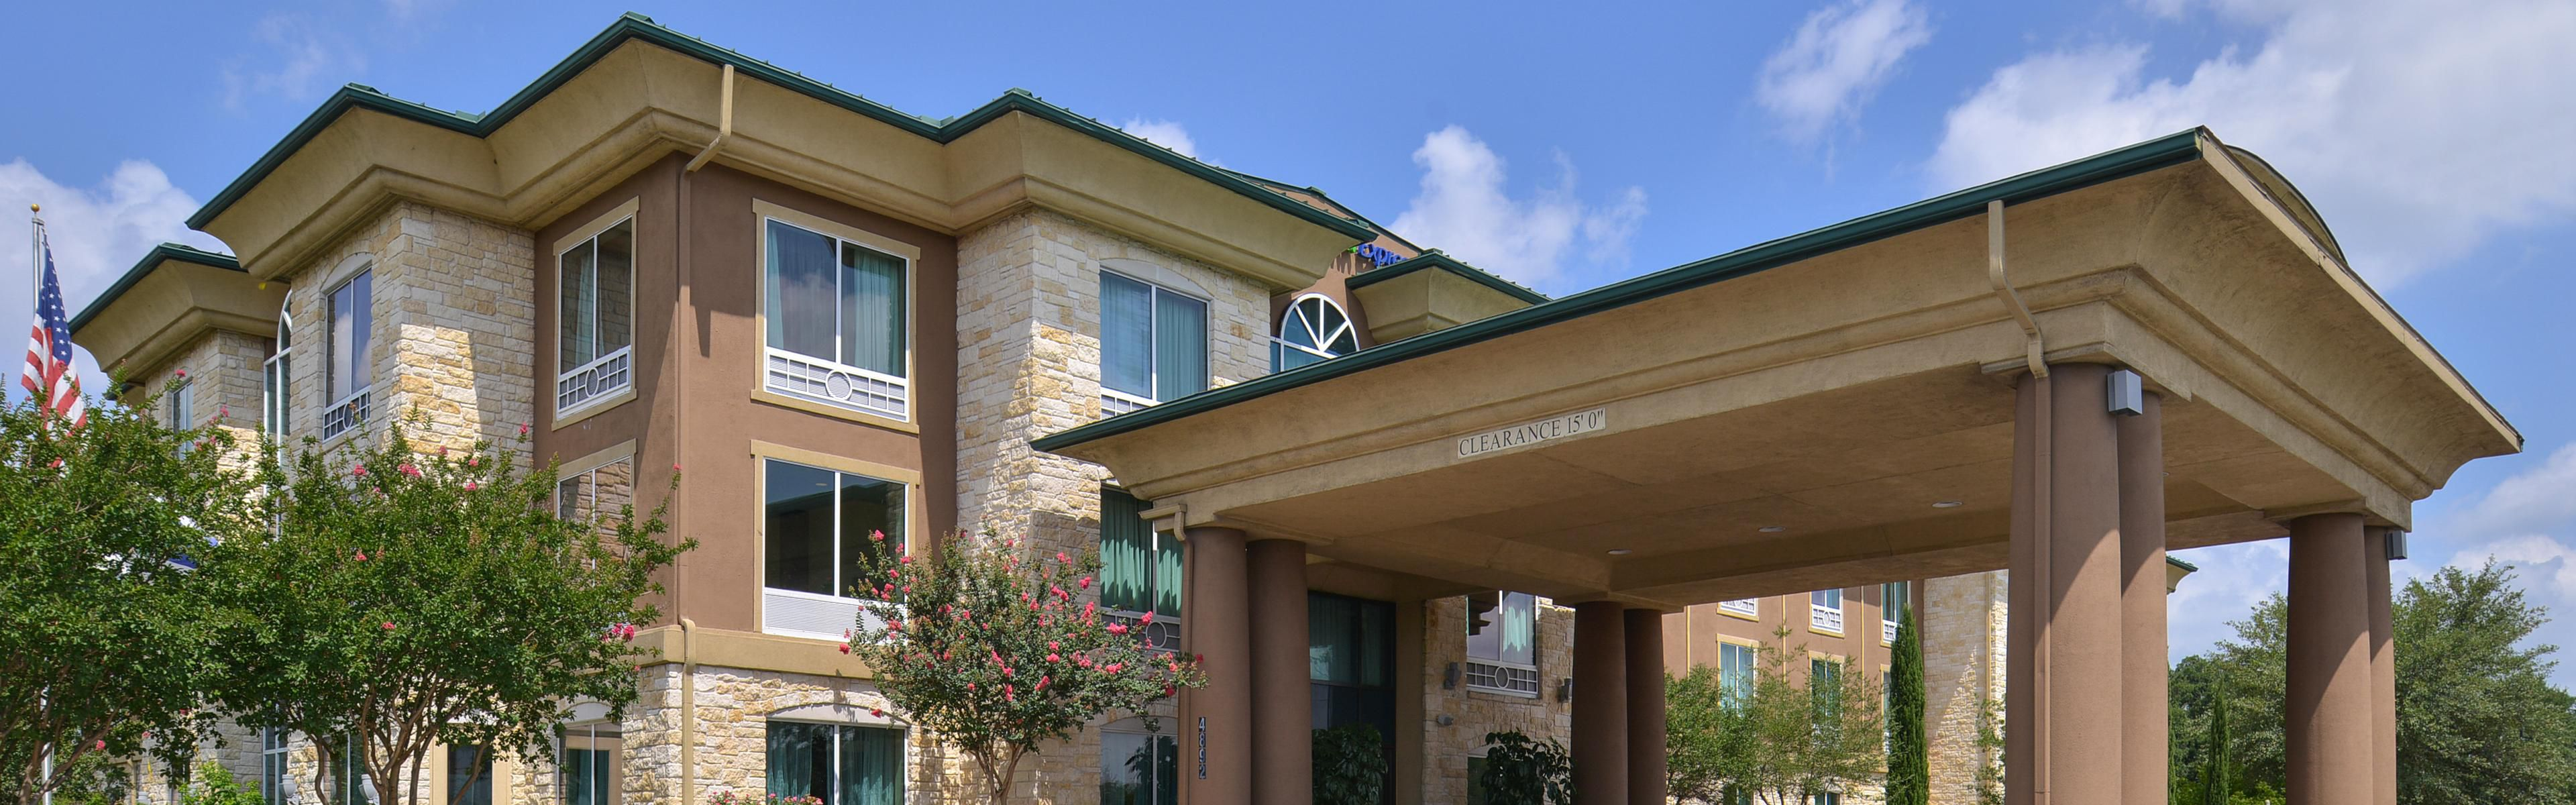 Holiday Inn Express & Suites Austin SW - Sunset Valley image 0